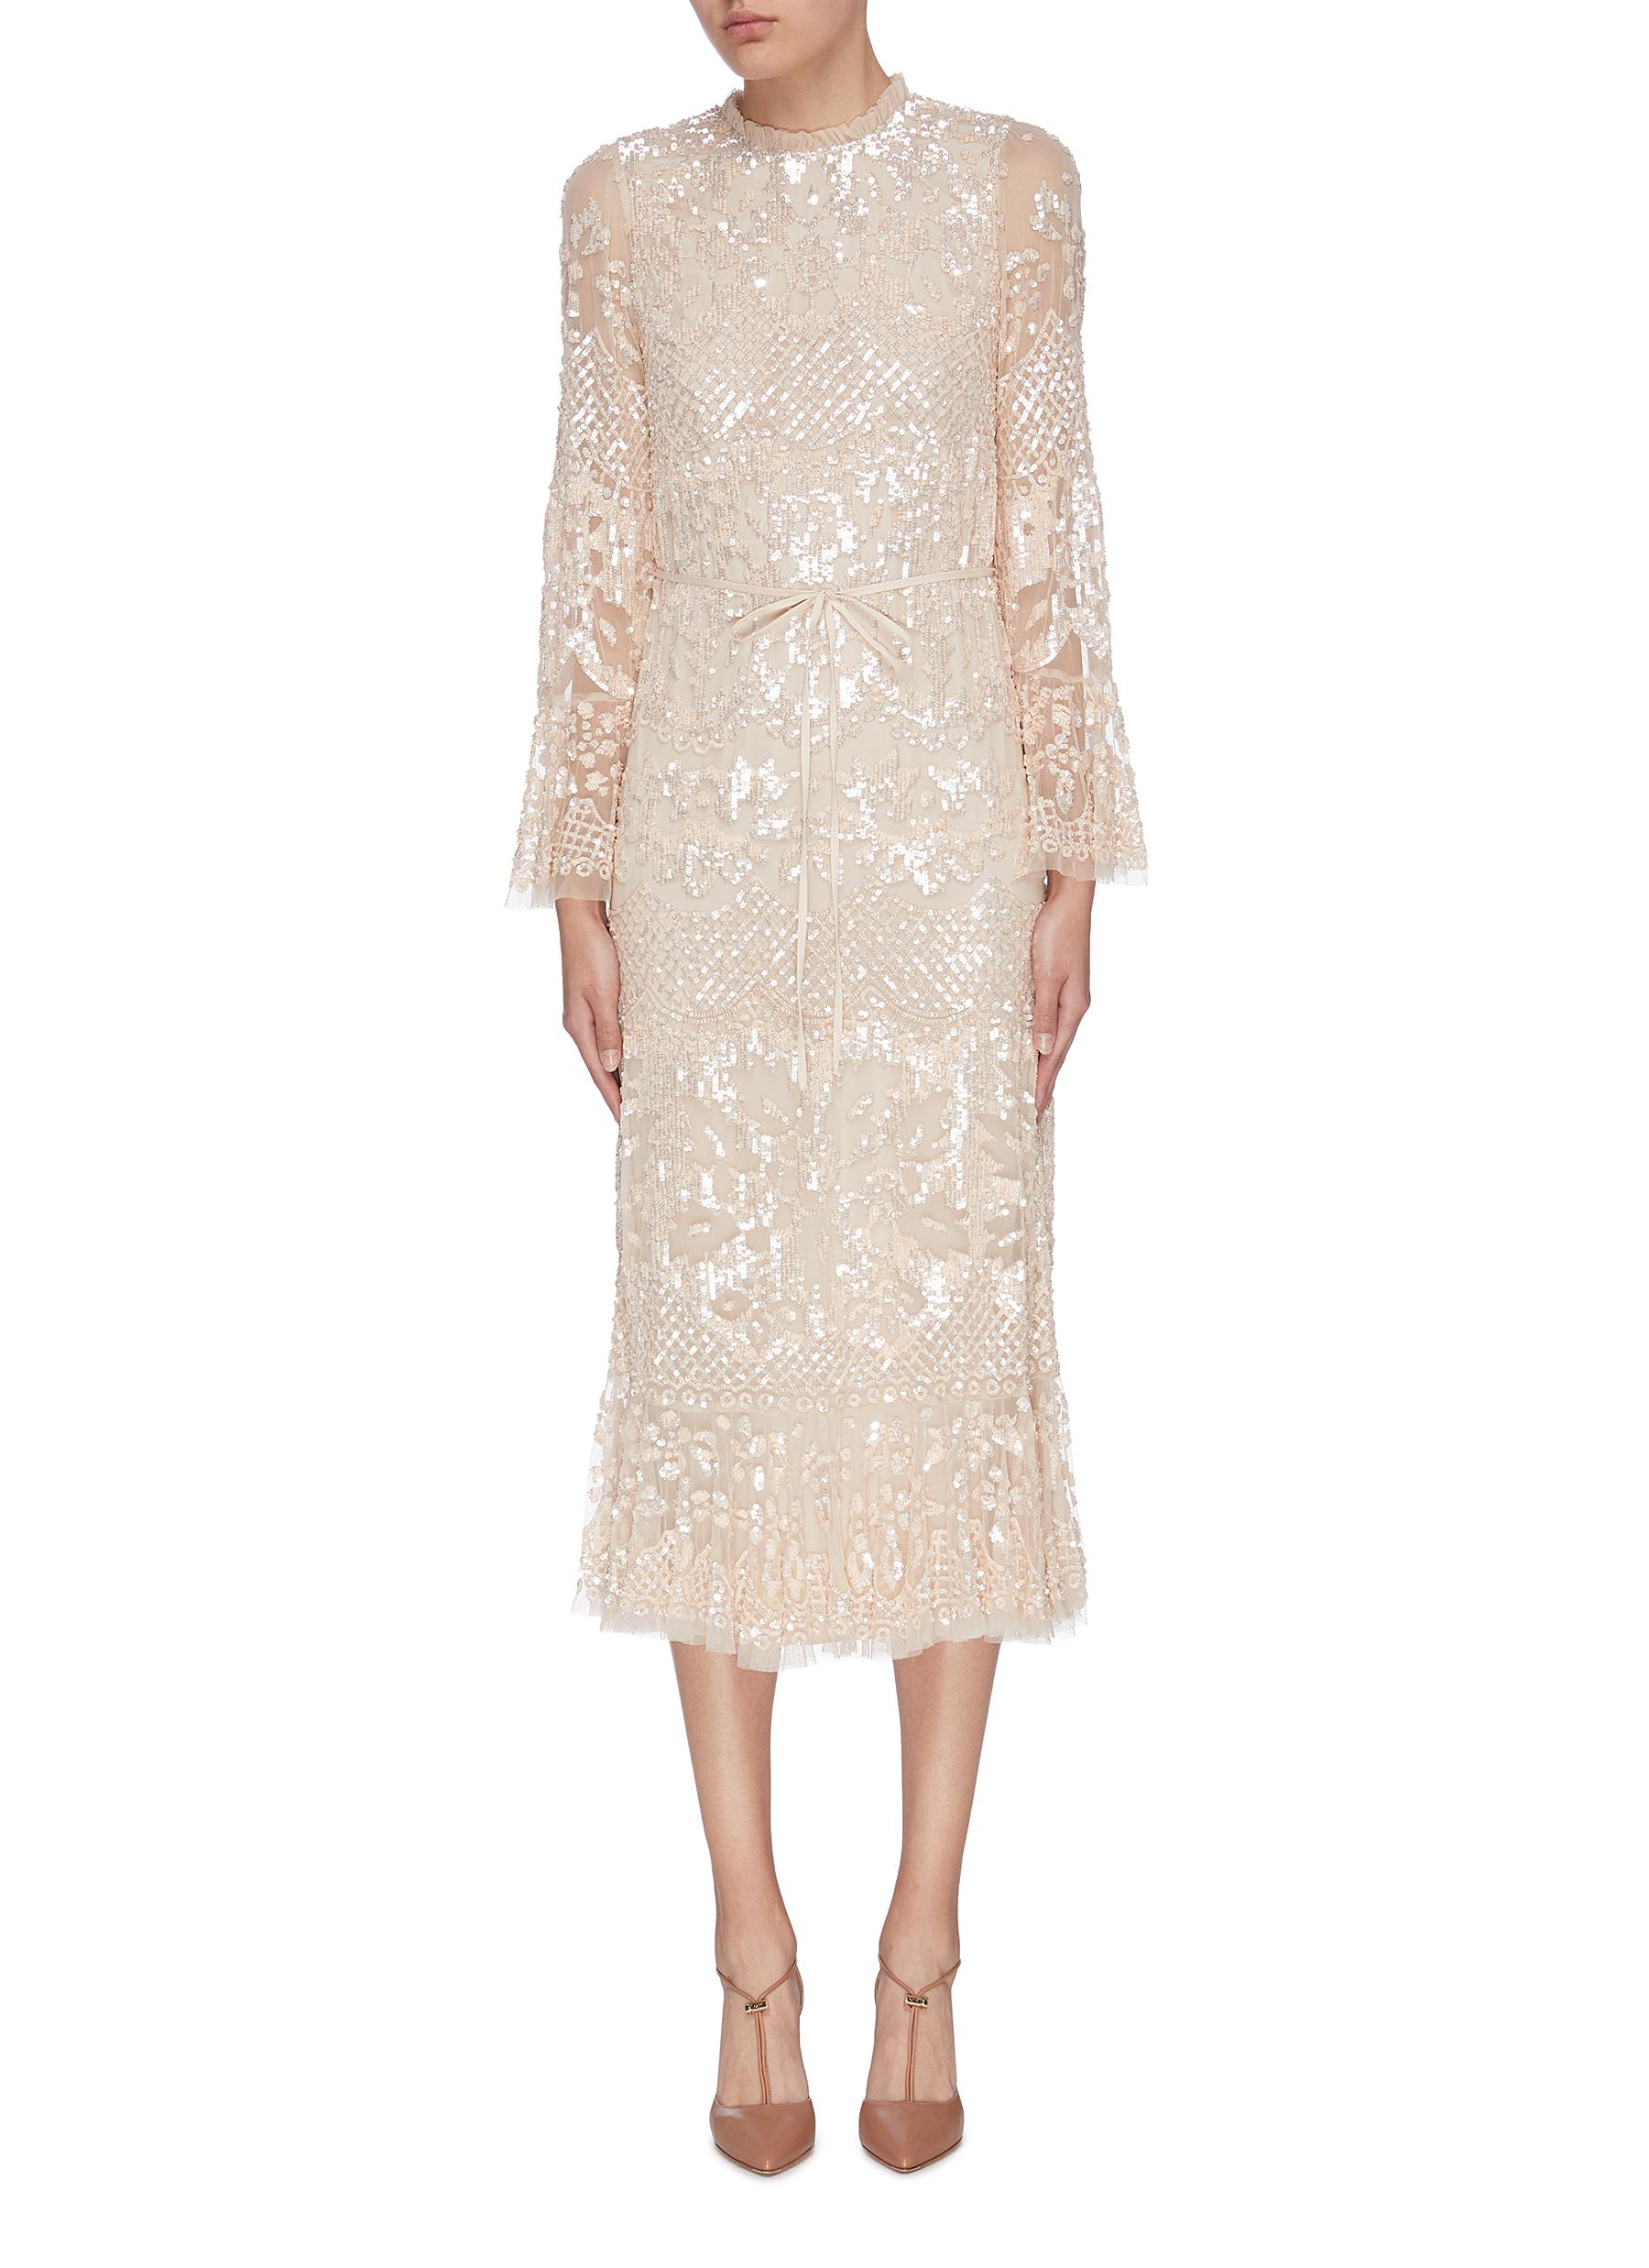 Buy Needle & Thread Dresses 'Snowdrop' sequin embellished embroidered dress